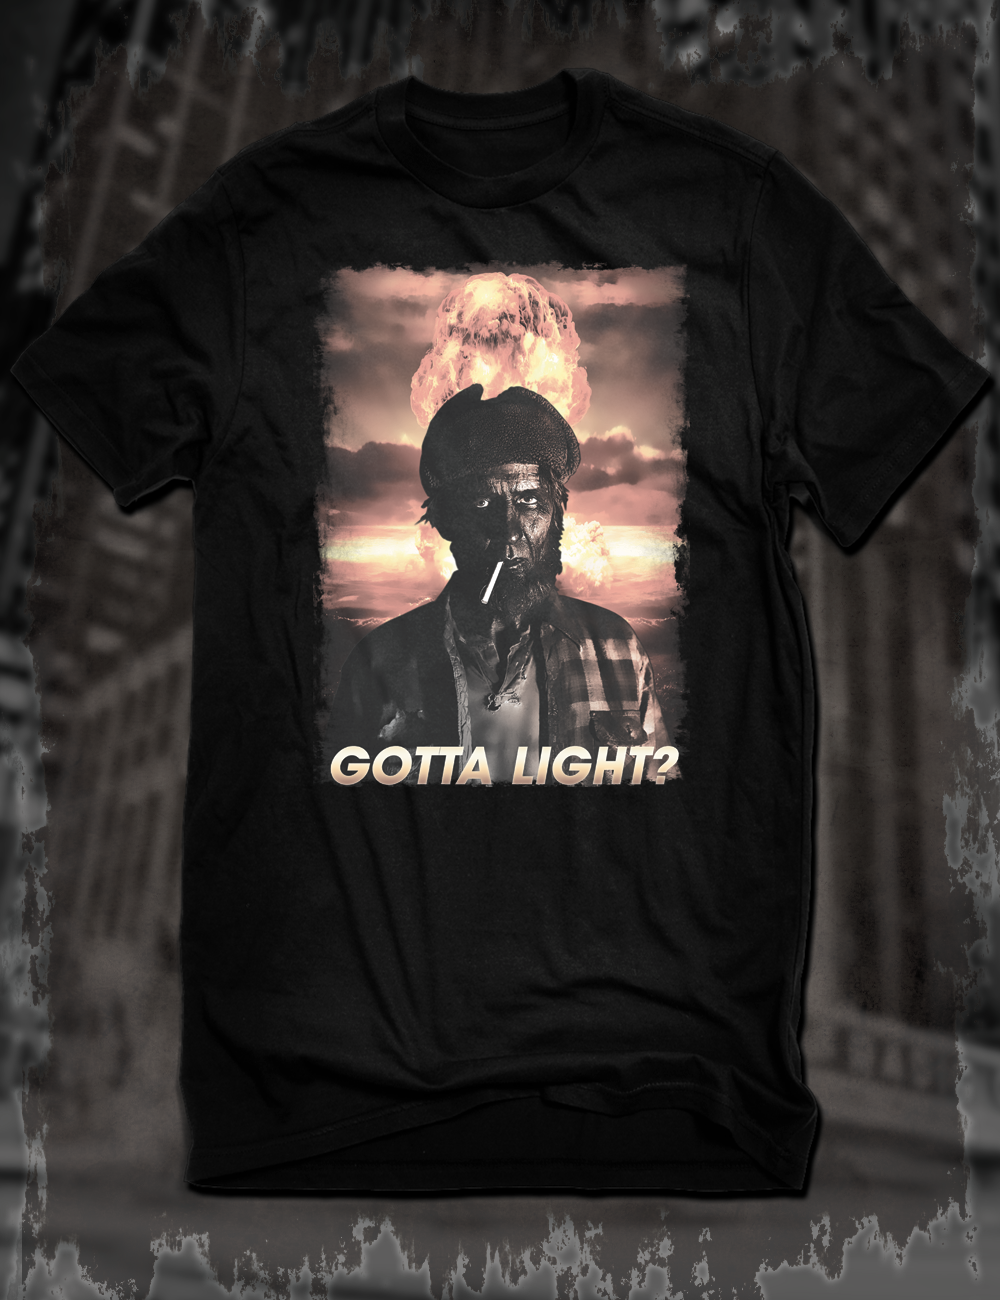 Skeksis And I Know It Vintage Men Cotton T-Shirt S-6XL Black Made in USA